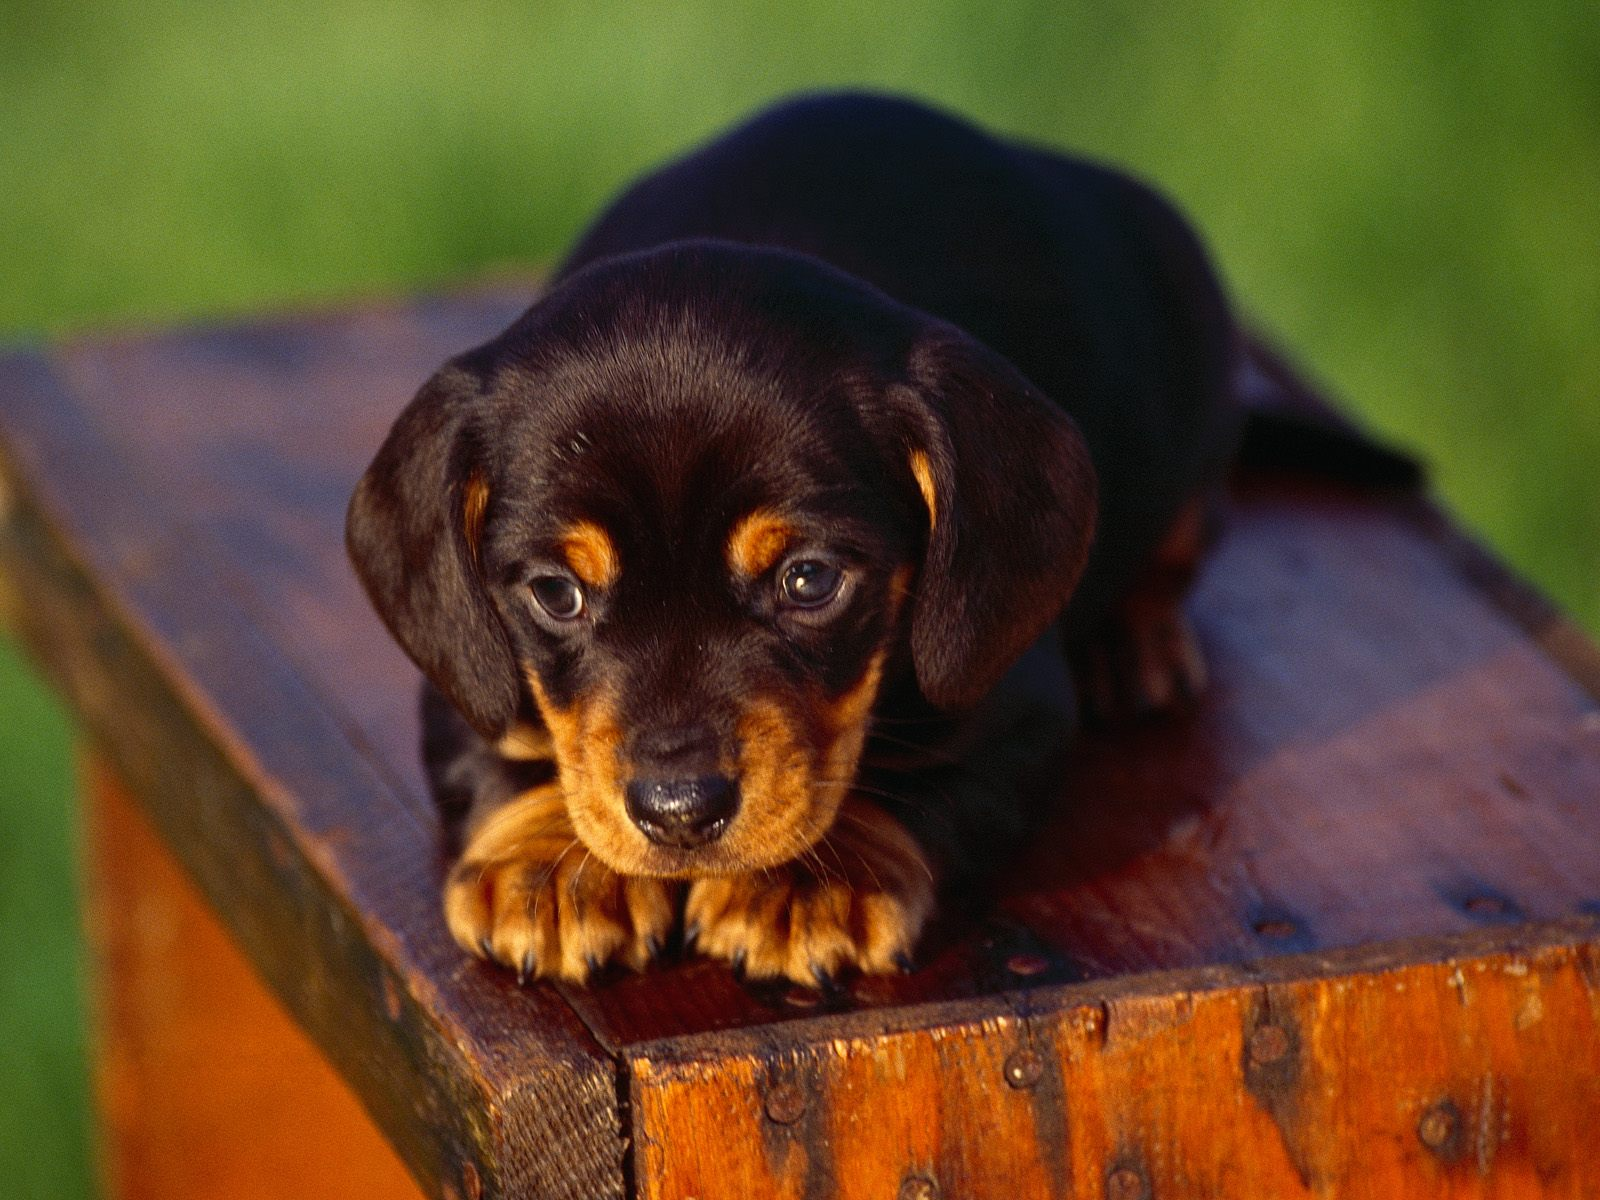 The Dog and Puppies: Black and Tan Coonhound